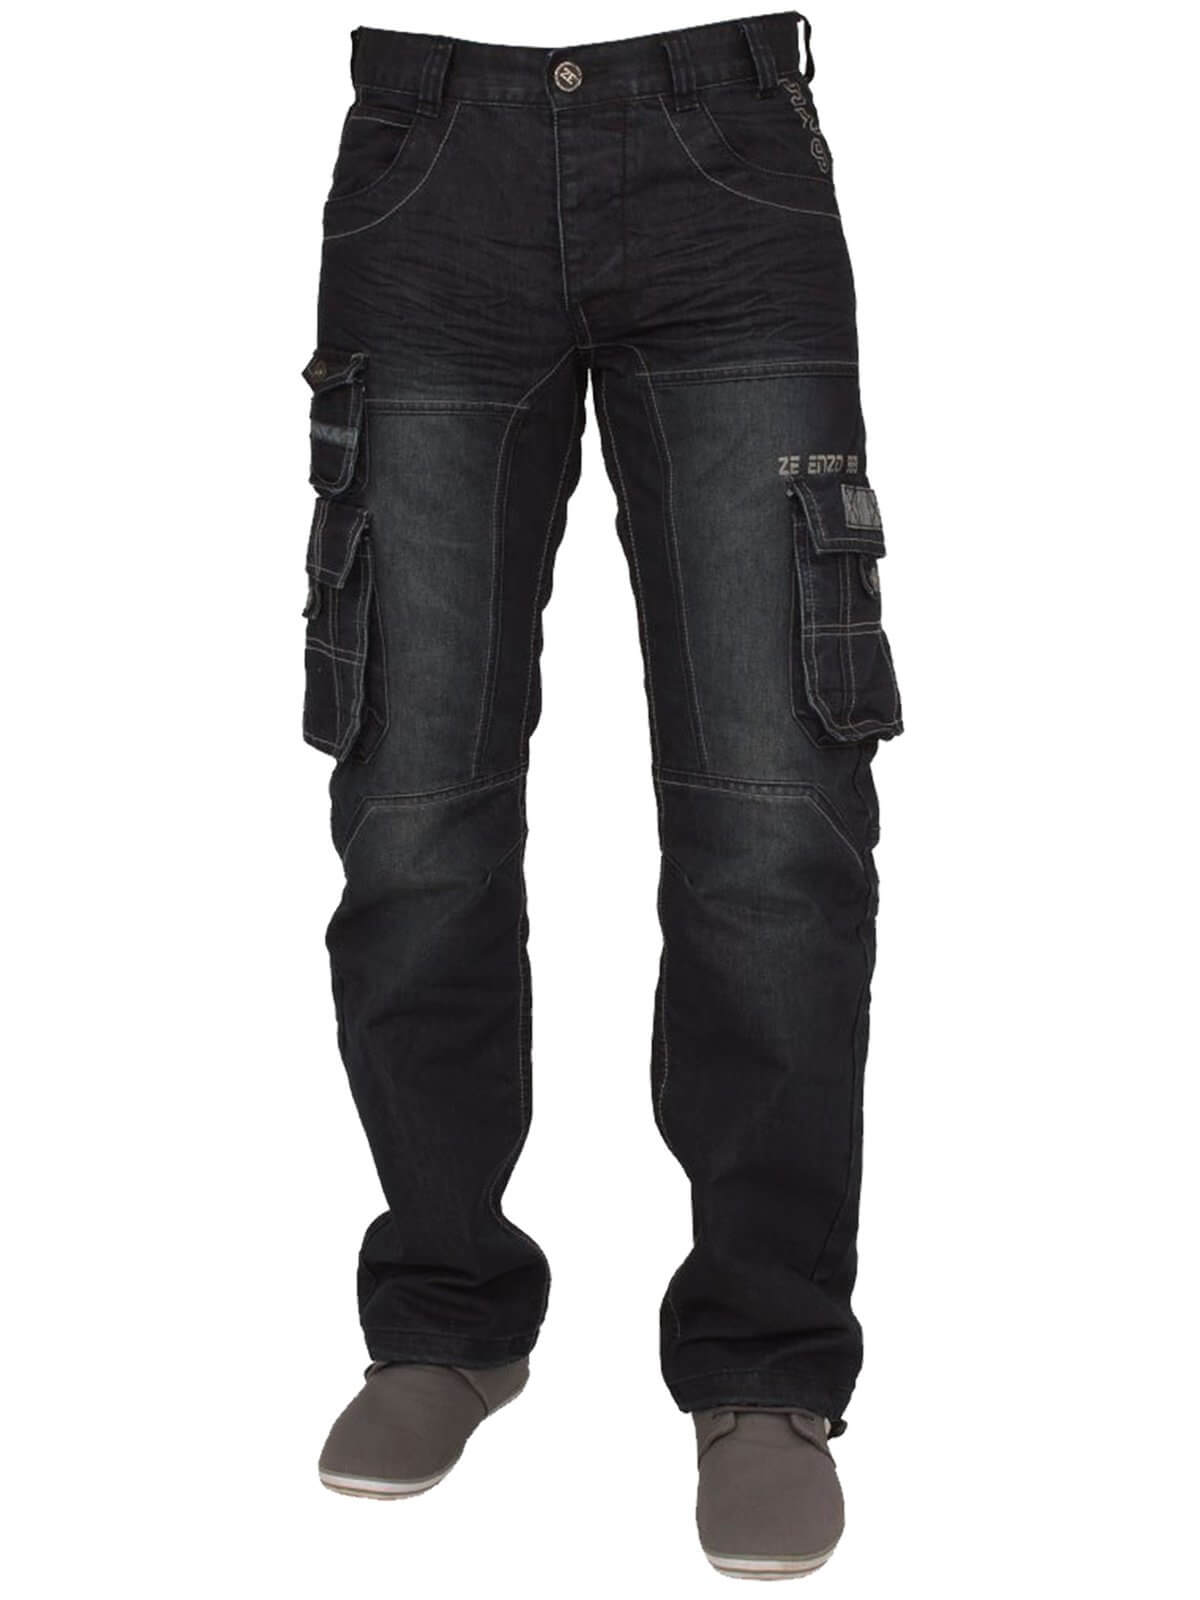 Clearance | Mens Dark Wash Combat Denim Jeans EZ319 | Enzo Designer Menswear